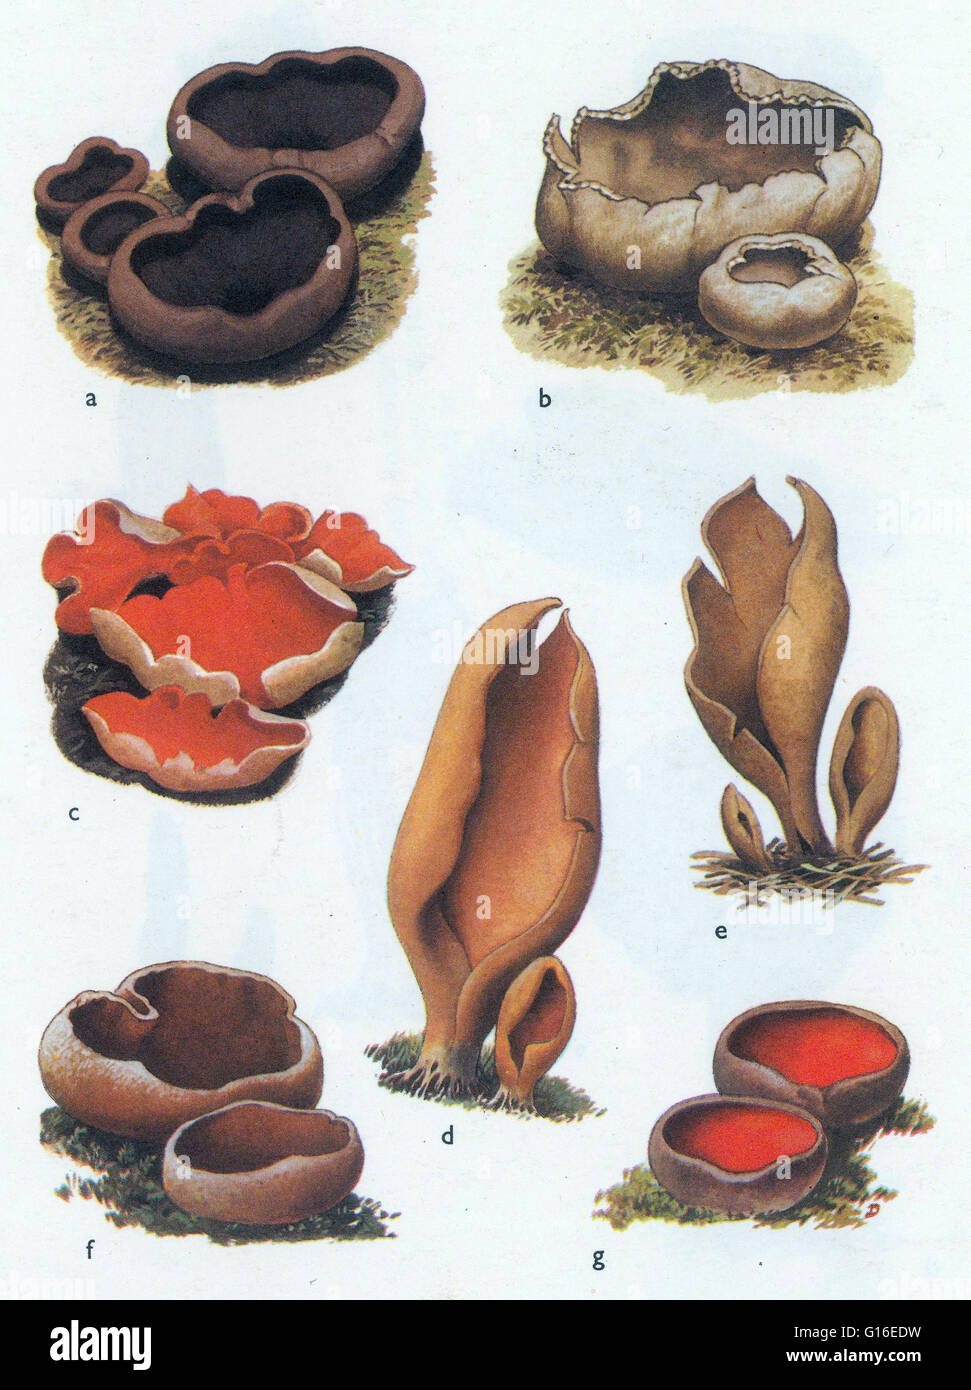 Fungi Peziza. Peziza is a large genus of saprophytic cup fungi that grow on the ground, rotting wood, or dung. Most - Stock Image